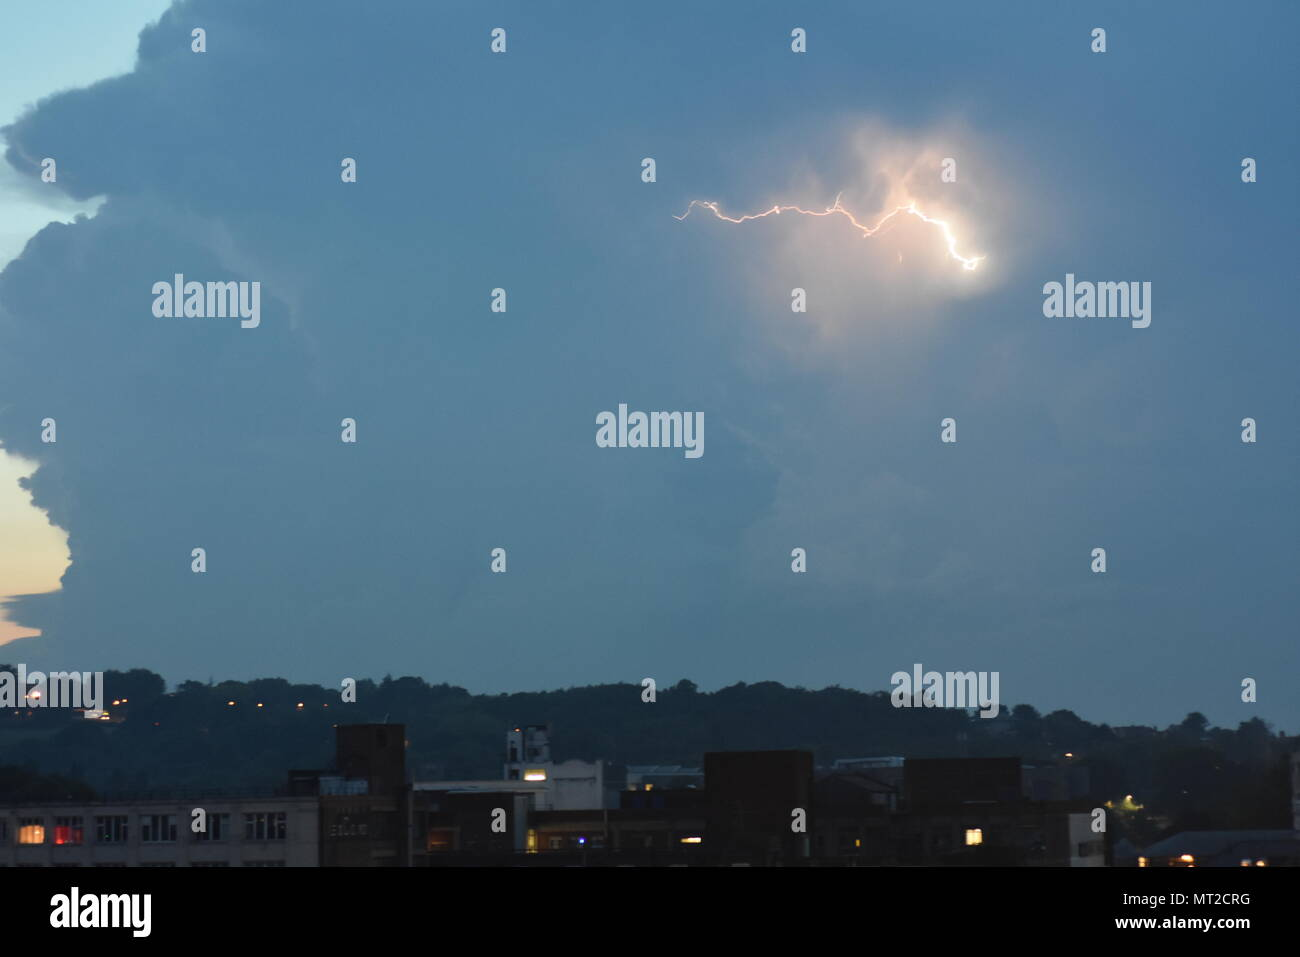 London, UK. 27th May 2018. Second day of the Thunderstorm lights up the skies over London with more lightning as the Bank holiday continues. Bolts of lightning flash and crack up in the clouds in what is being called the Mother of all thunder storms. The temperature is currently around 20 degrees and is predicted to reach 29 tomorrow so we can expect to get more thunder and lightning throughout the bank holiday. Credit: Ricardo Maynard/Alamy Live News - Stock Image